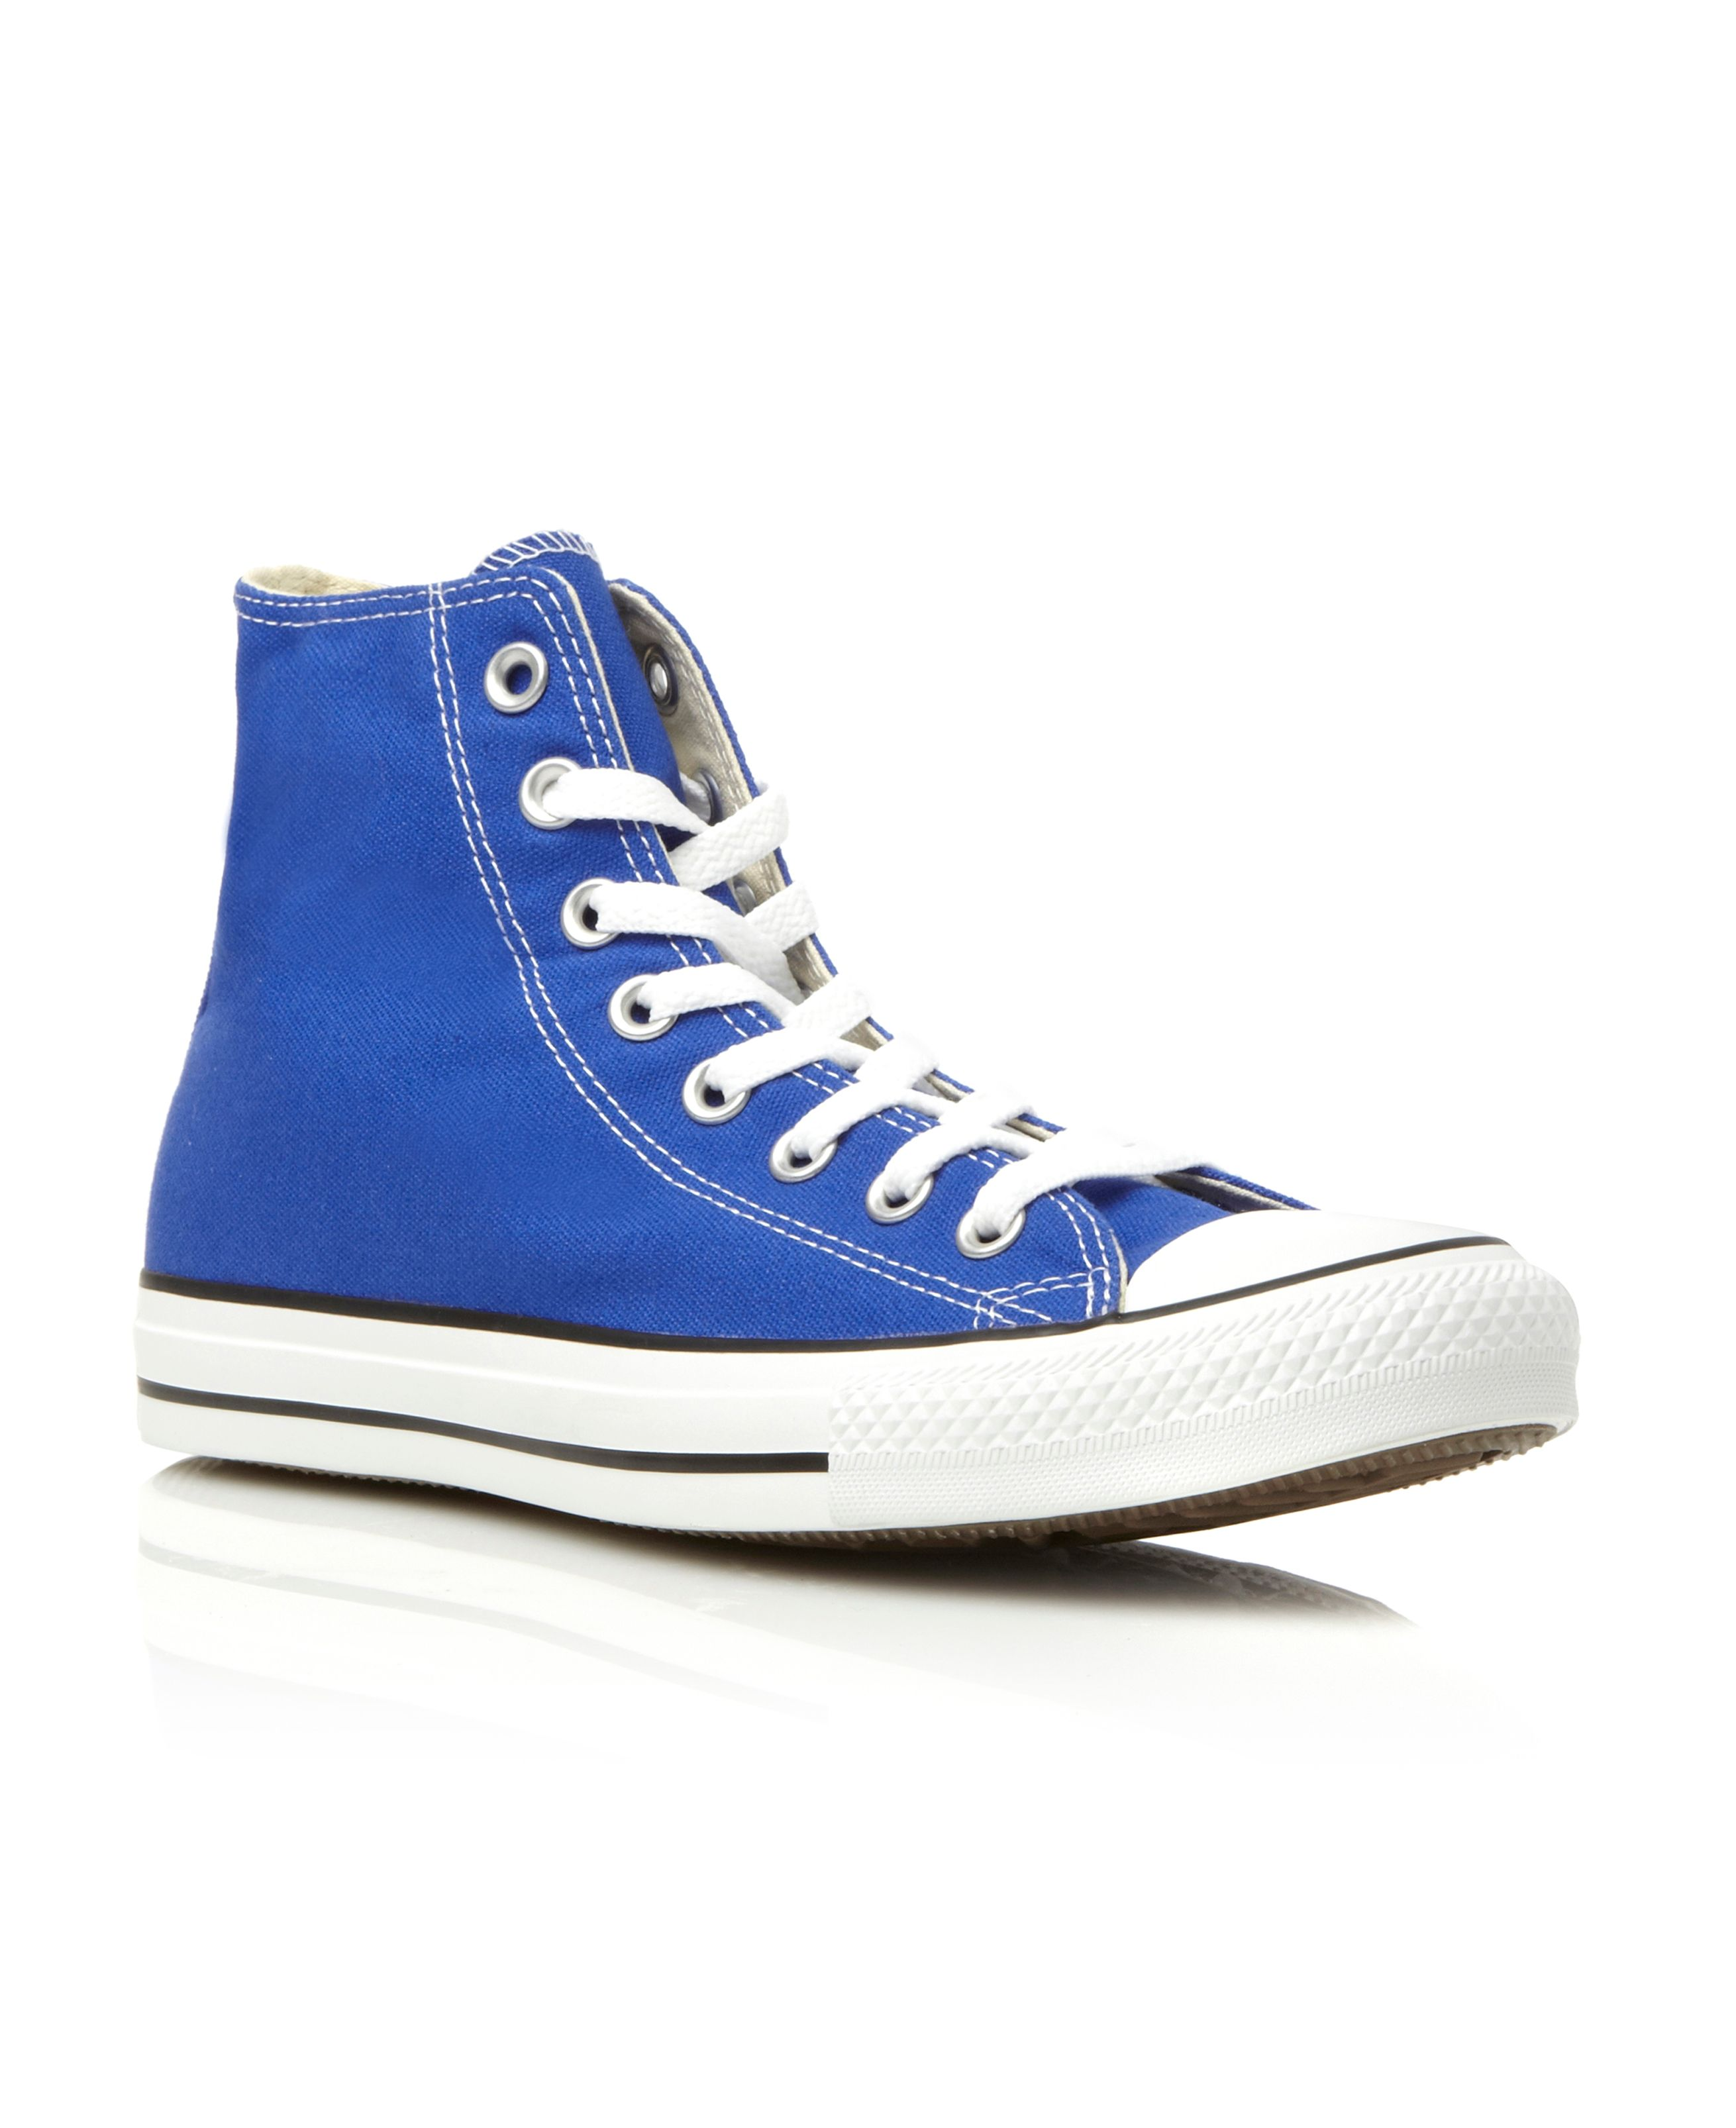 Converse Ctas Hi Top High Top Trainers In Blue For Men Lyst